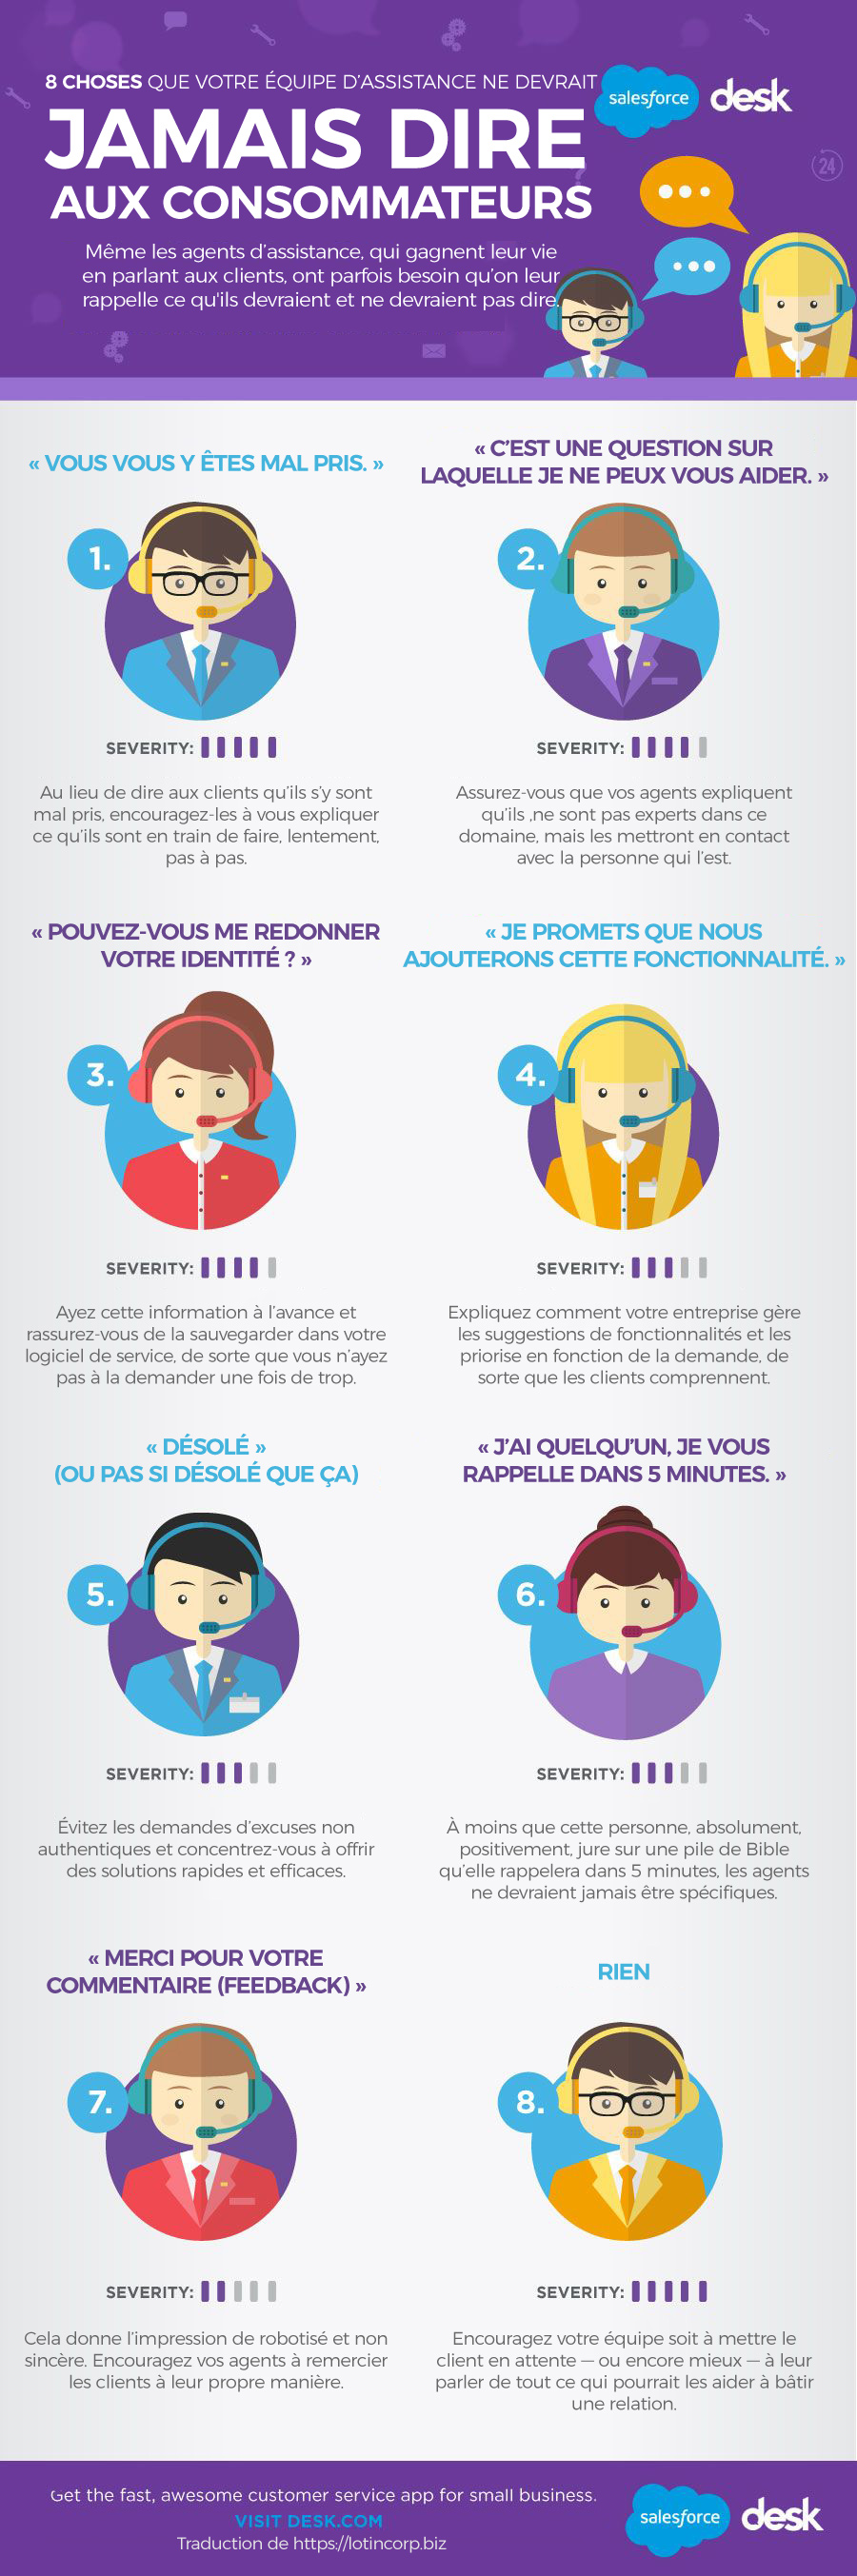 8-things-never-say-to-customer-by-desk-Fr